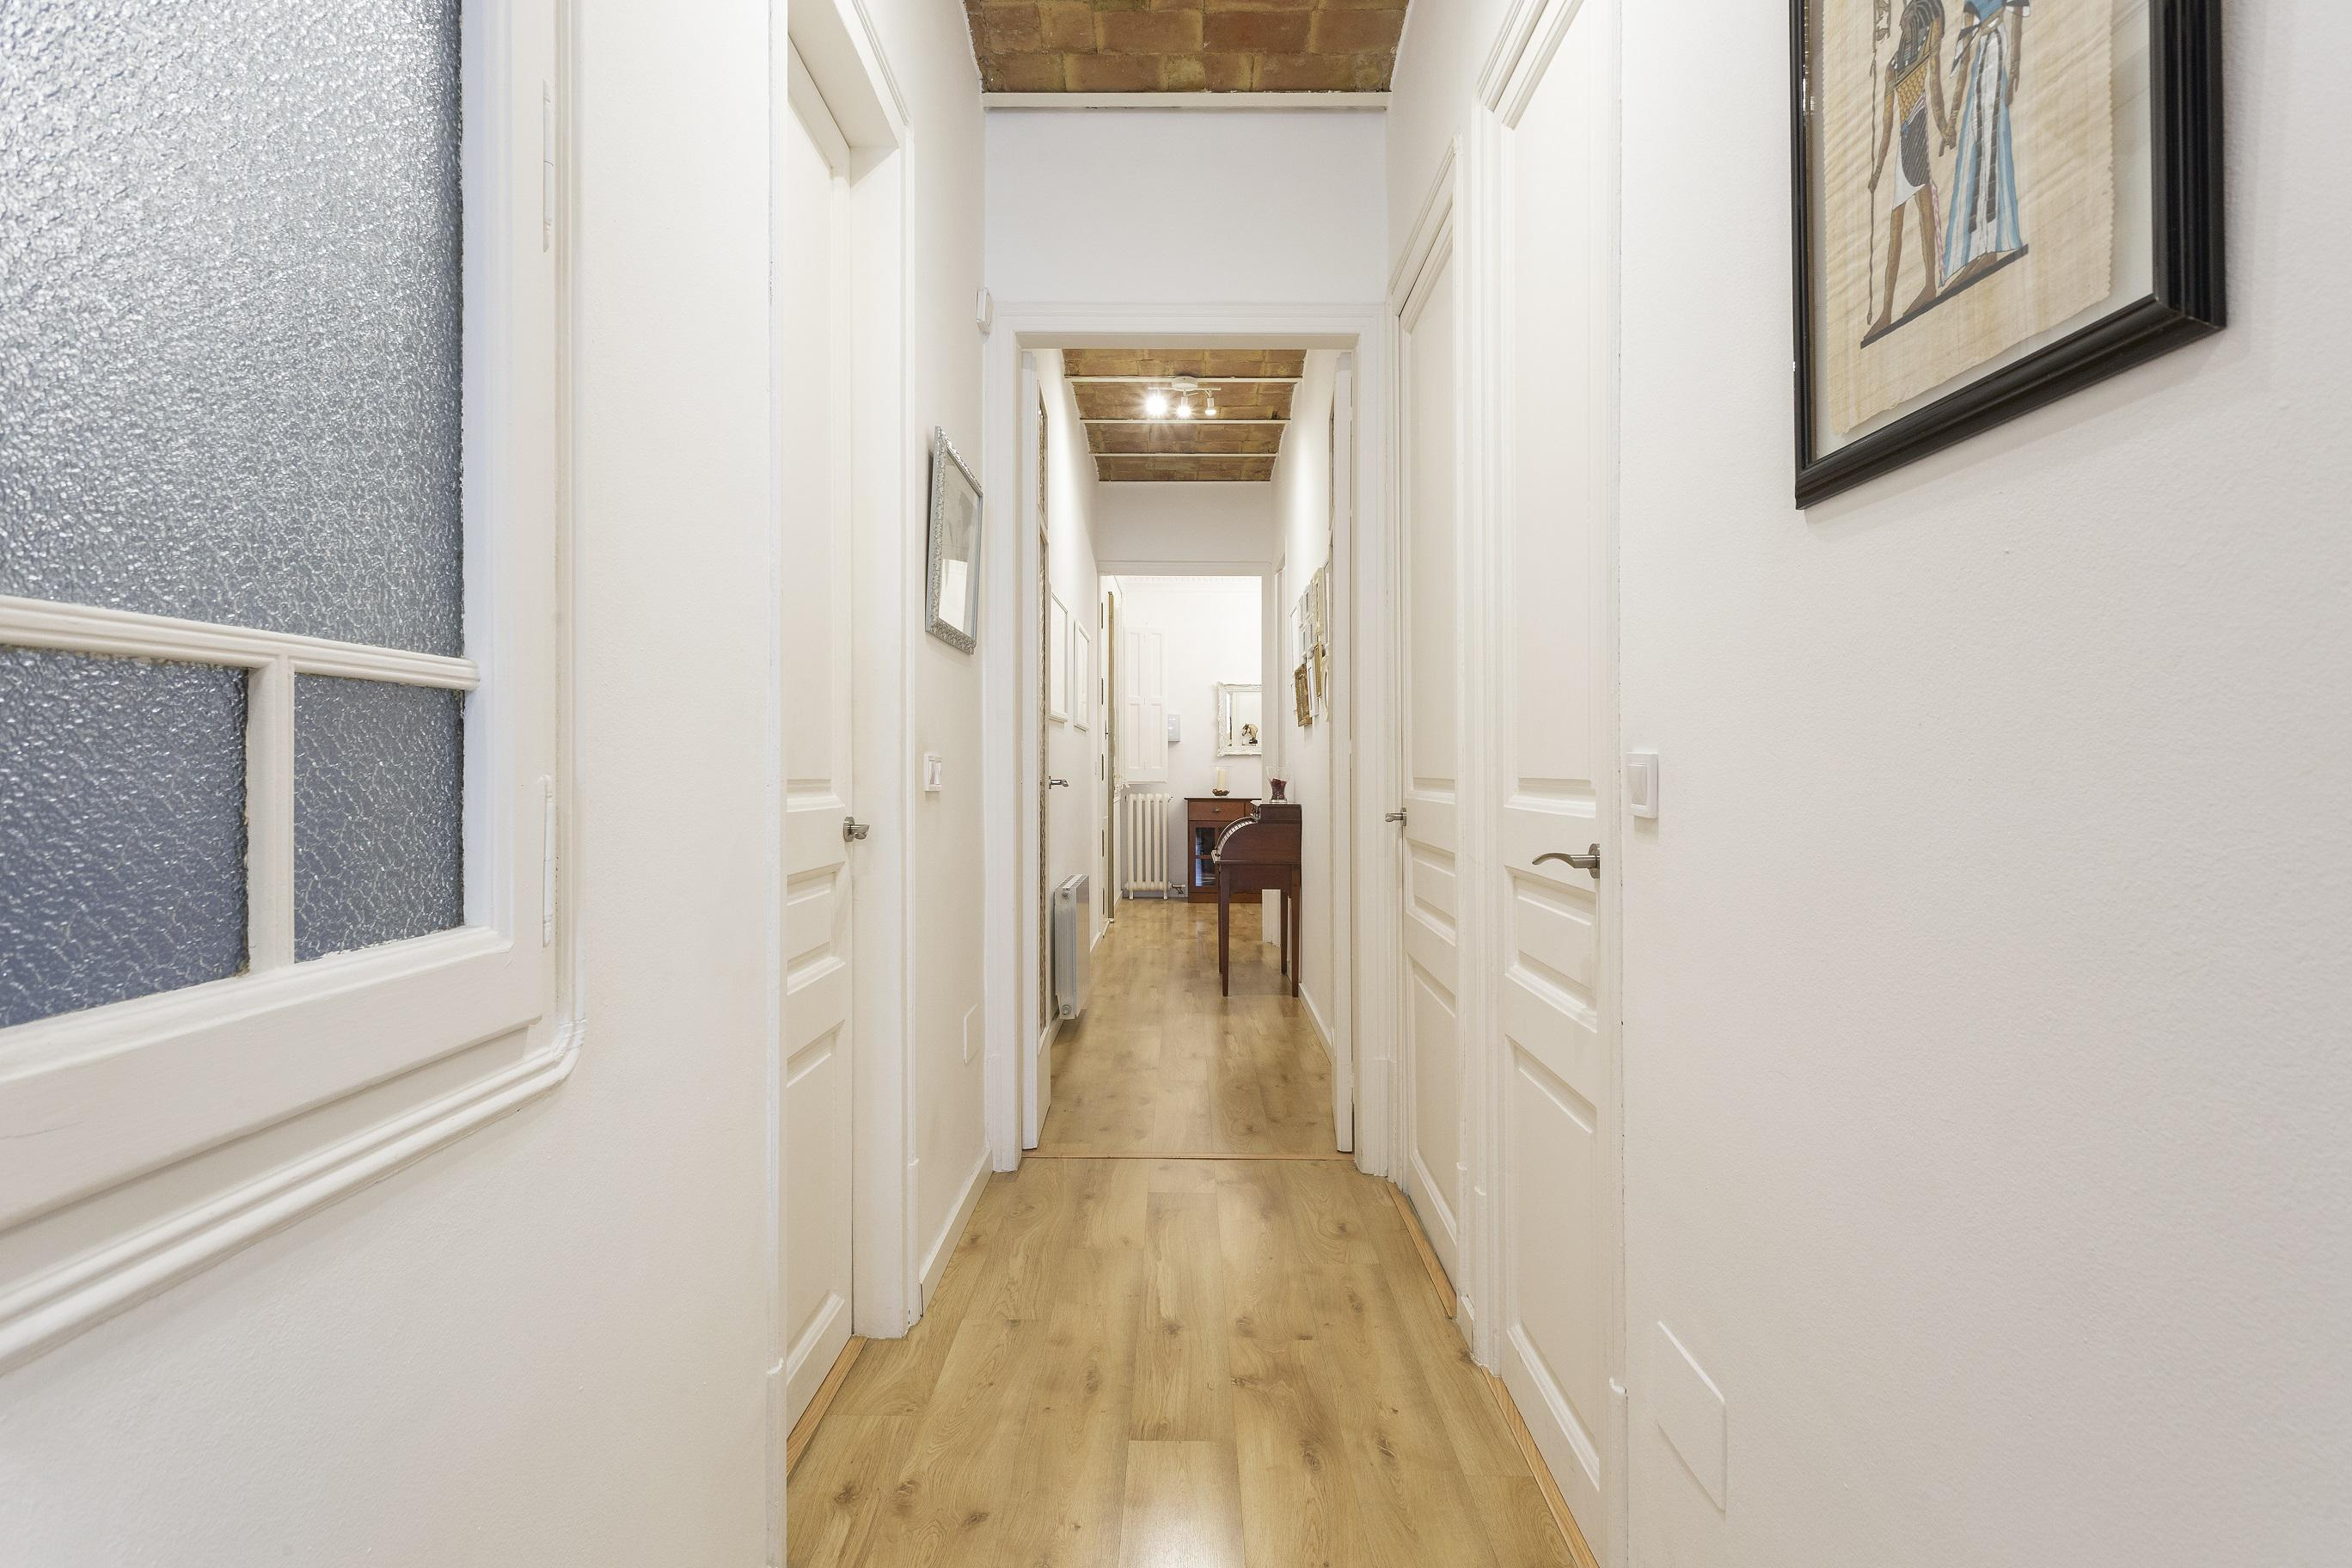 236190 Apartment for sale in Eixample, Old Left Eixample 4